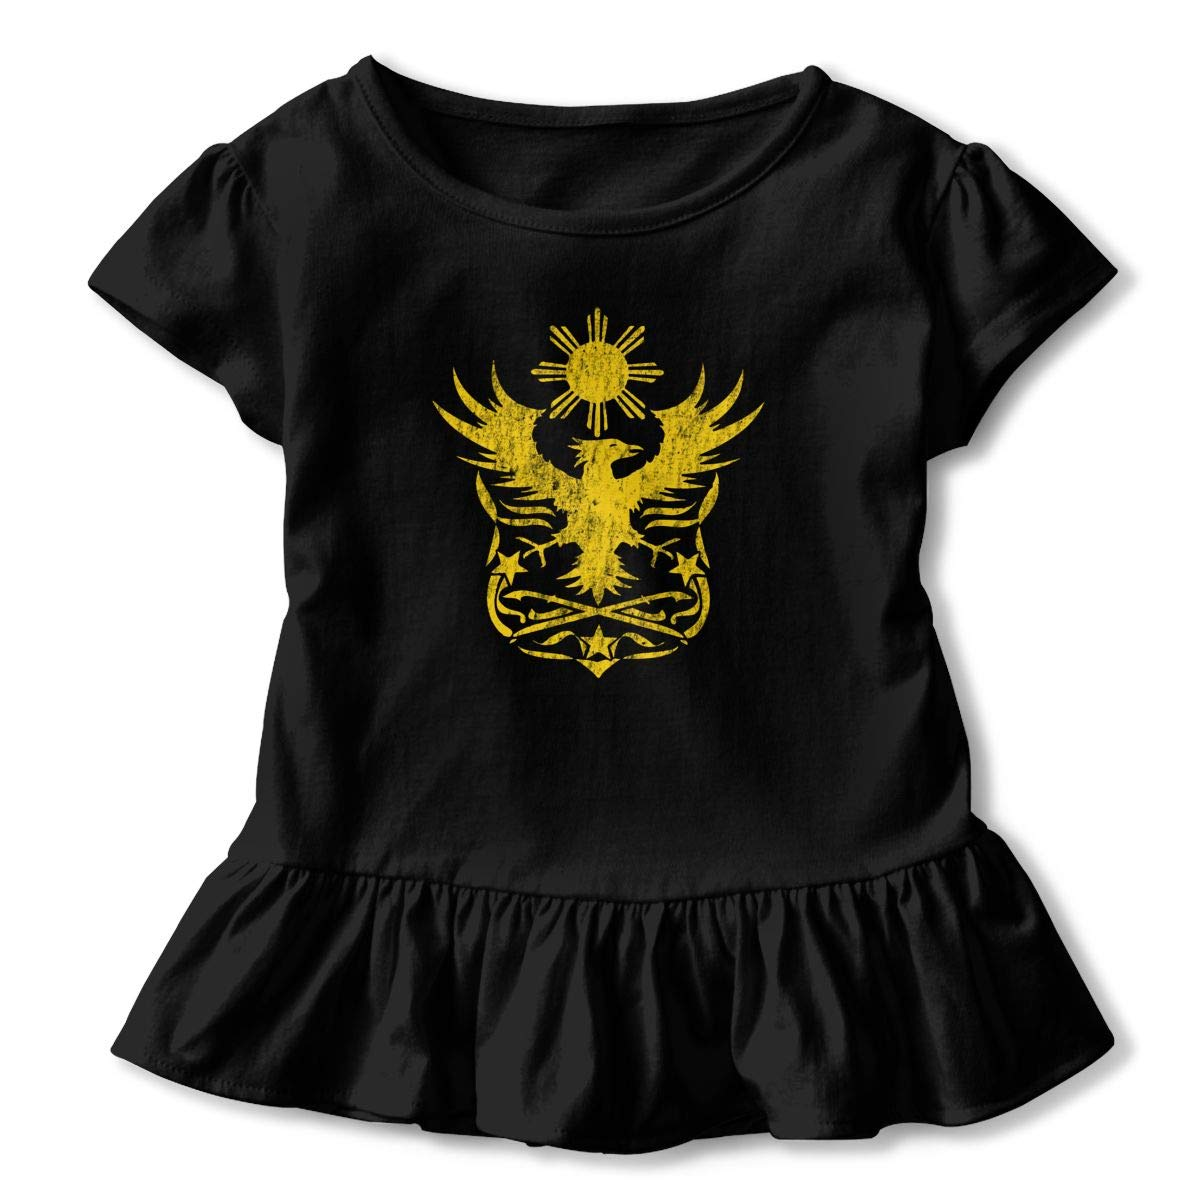 Philippine Eagle Toddler Baby Girls Short Sleeve Ruffle T-Shirt